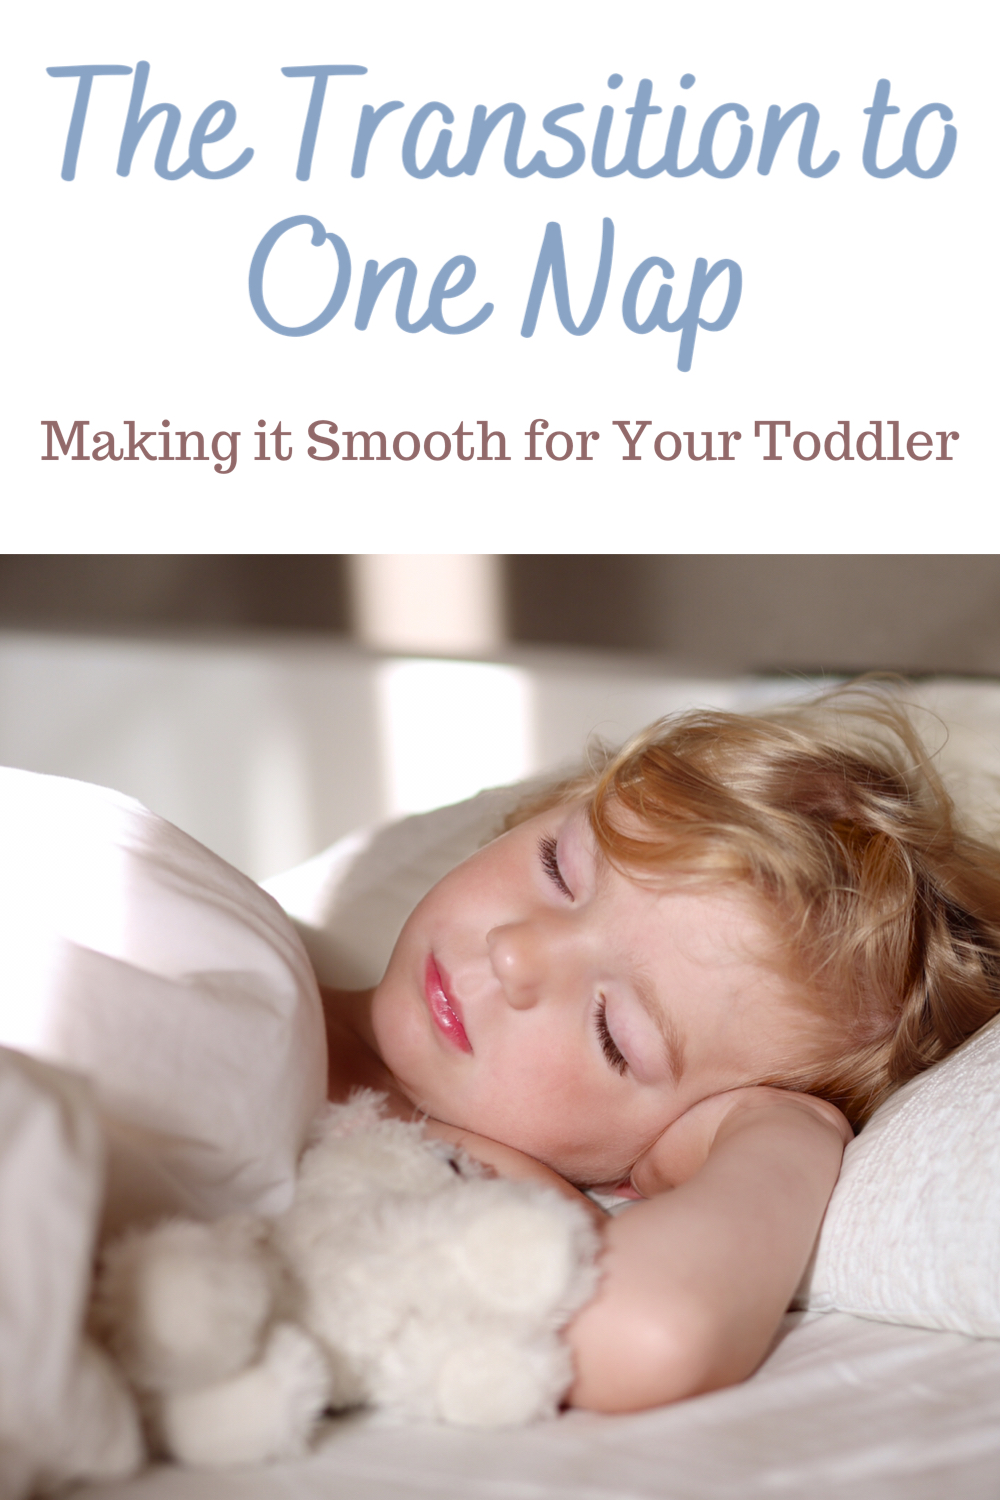 The transition to one nap, maki g it smooth for your toddler - A Sleeping Toddler